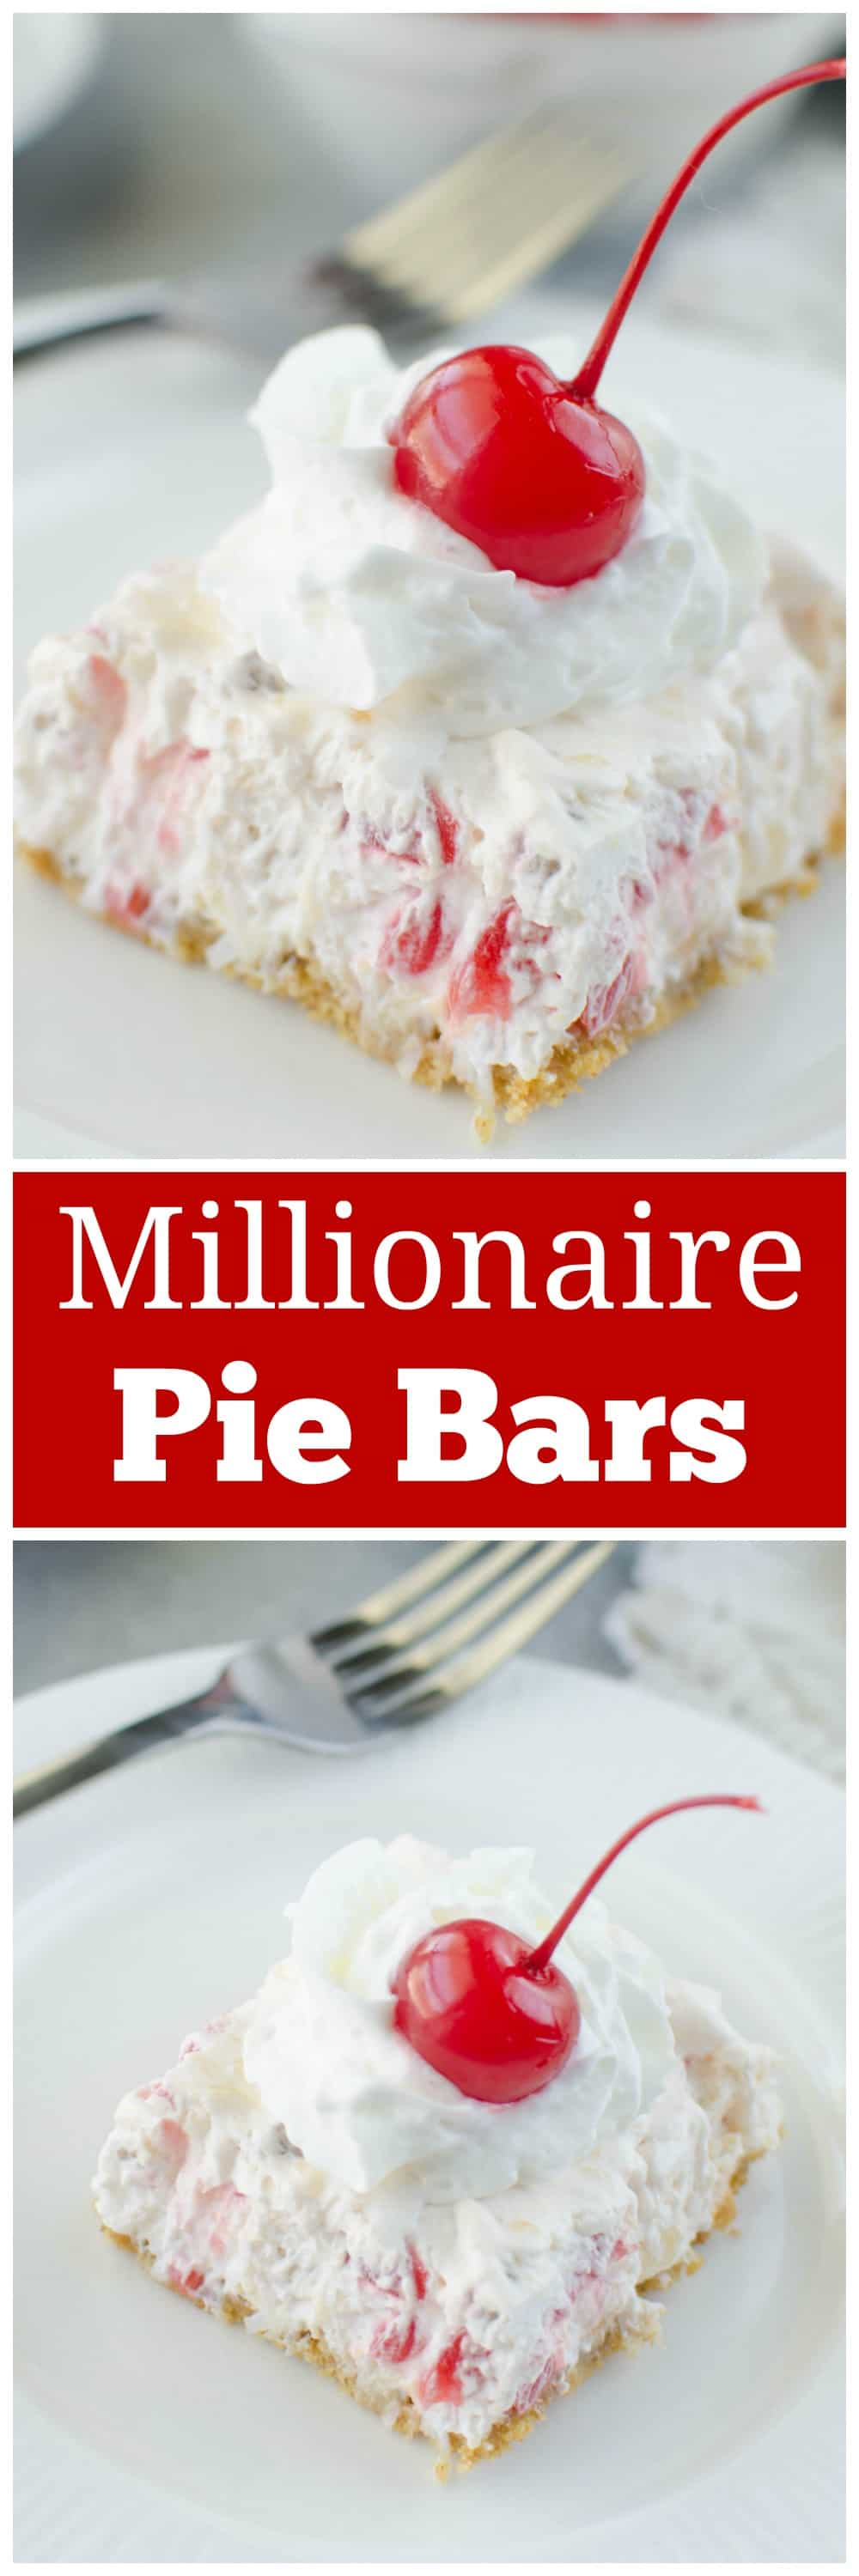 No Bake Million Dollar Pie Bars - sweet creamy bars filled with pineapple, maraschino cherries, coconut and pecans! They are so delicious and so easy!